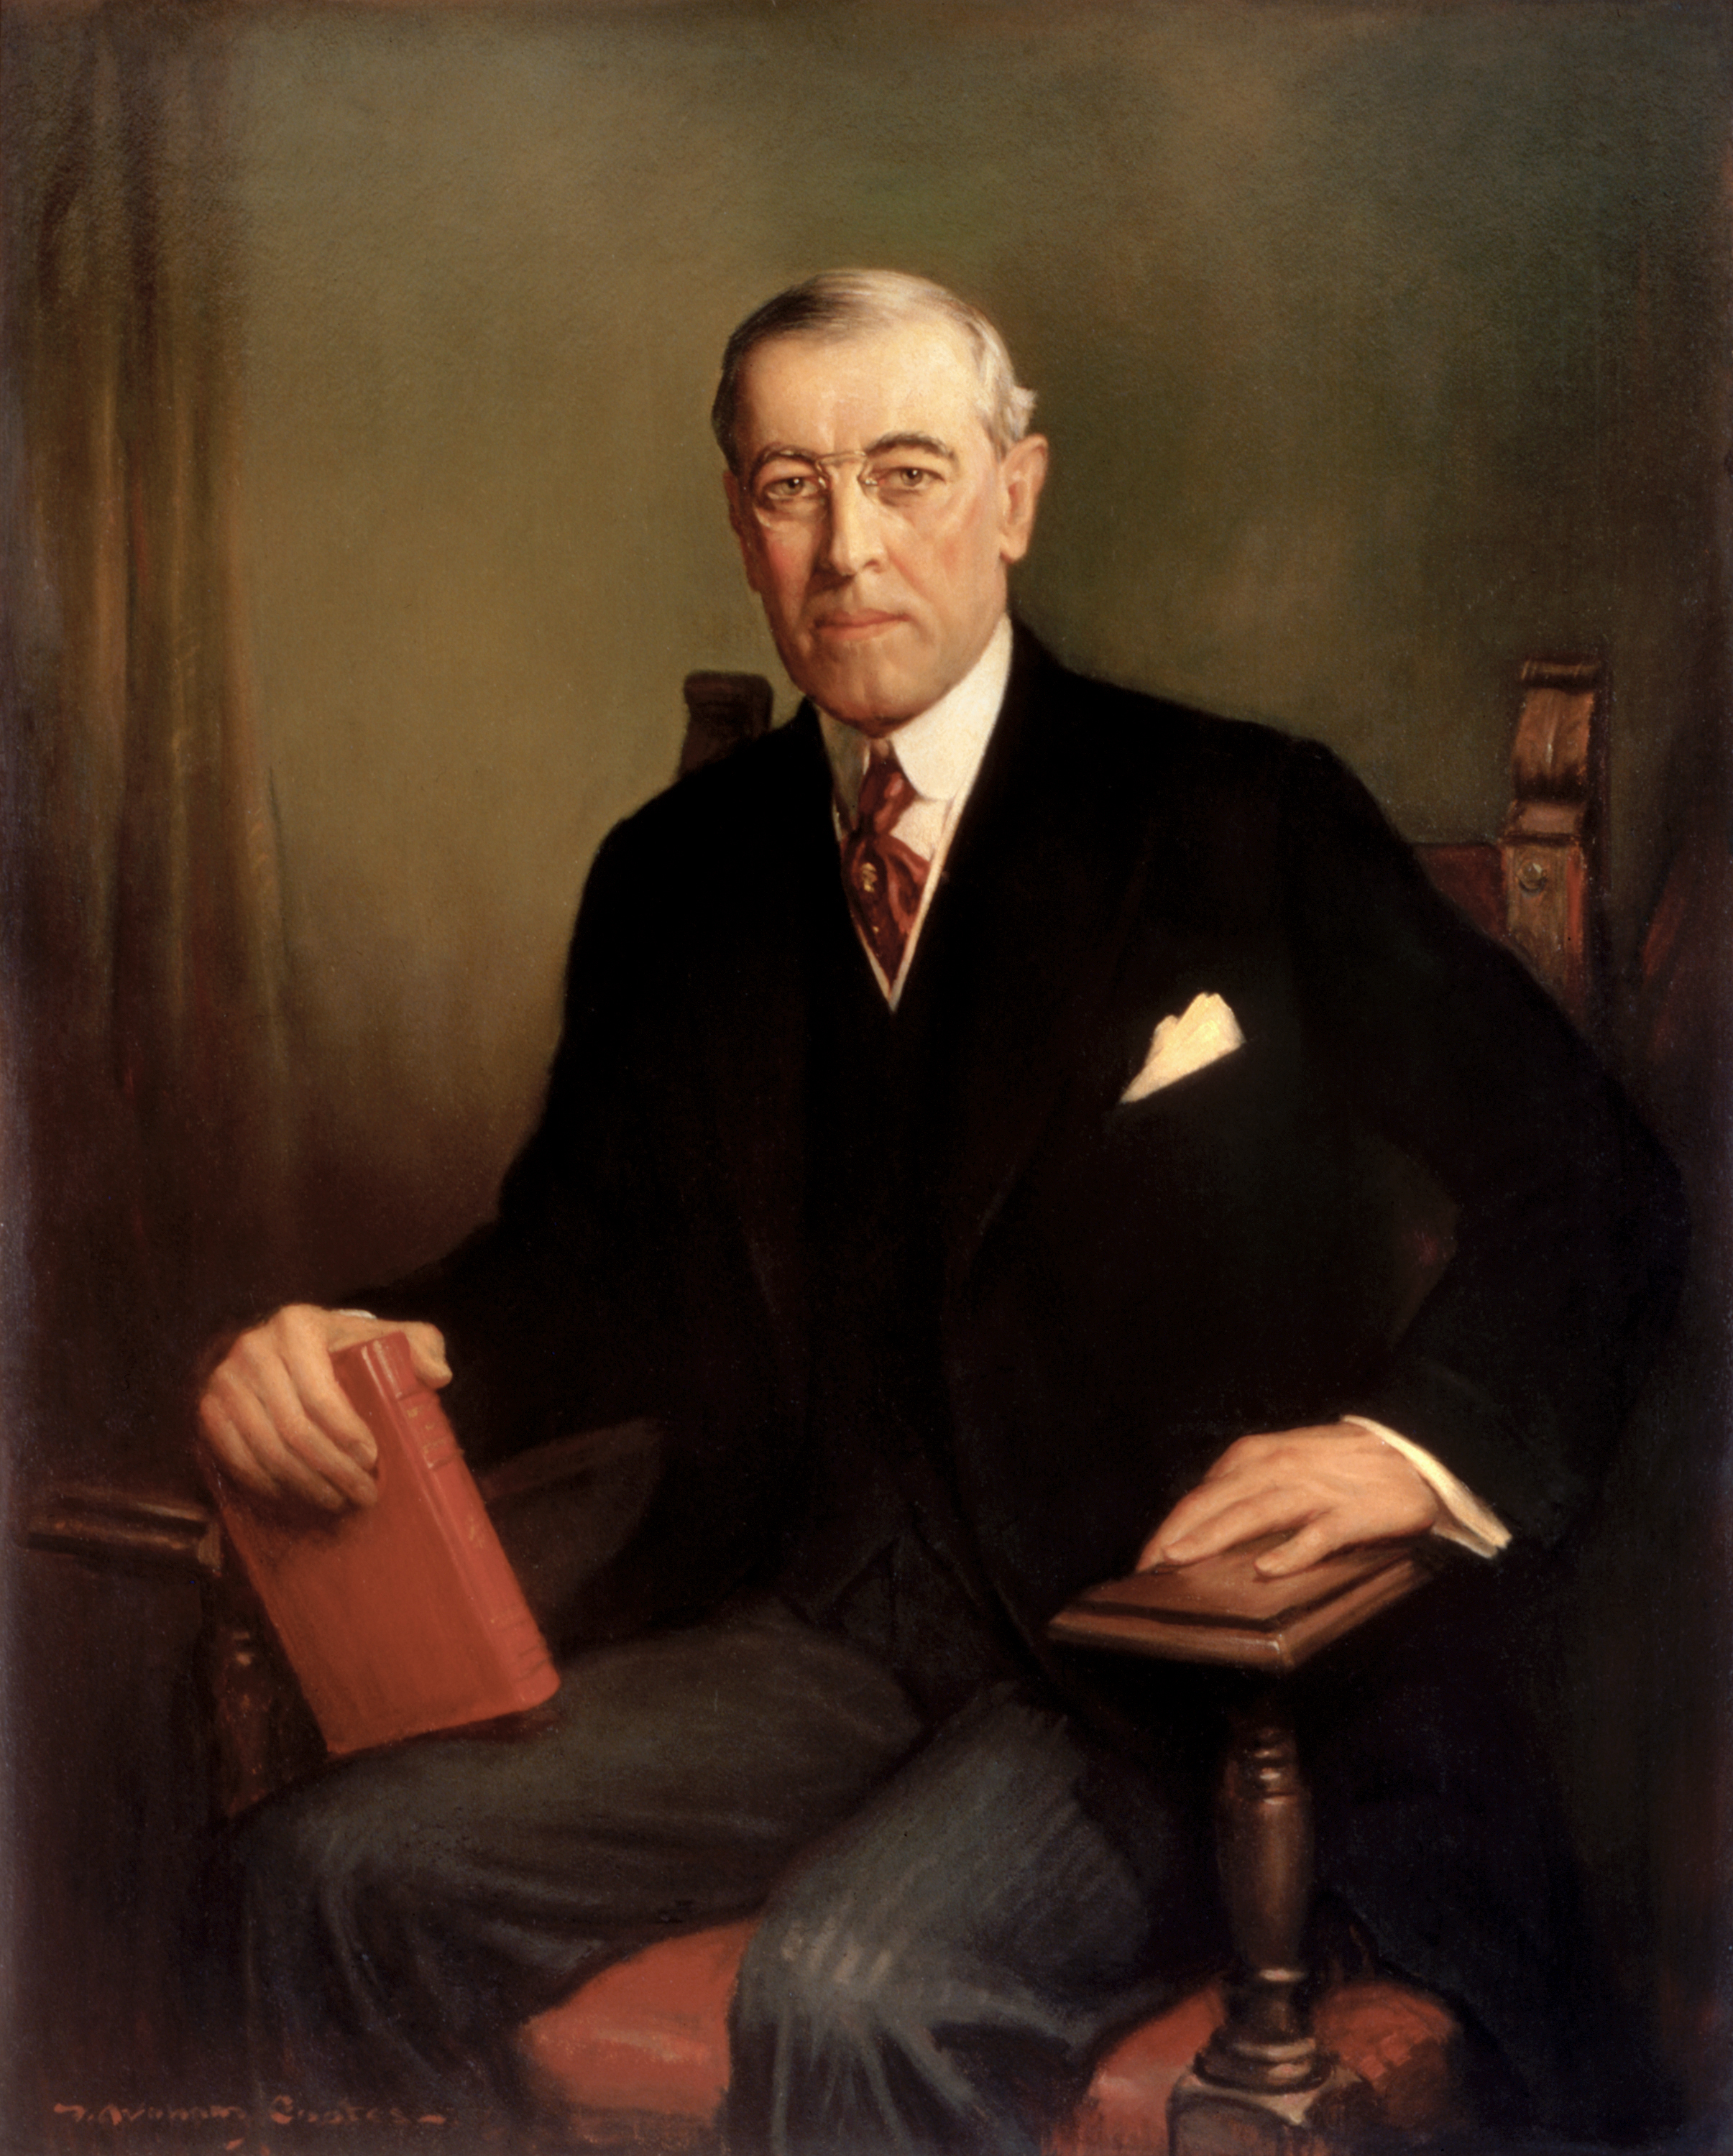 https://upload.wikimedia.org/wikipedia/commons/5/5b/President_Woodrow_Wilson_%281913%29.jpg